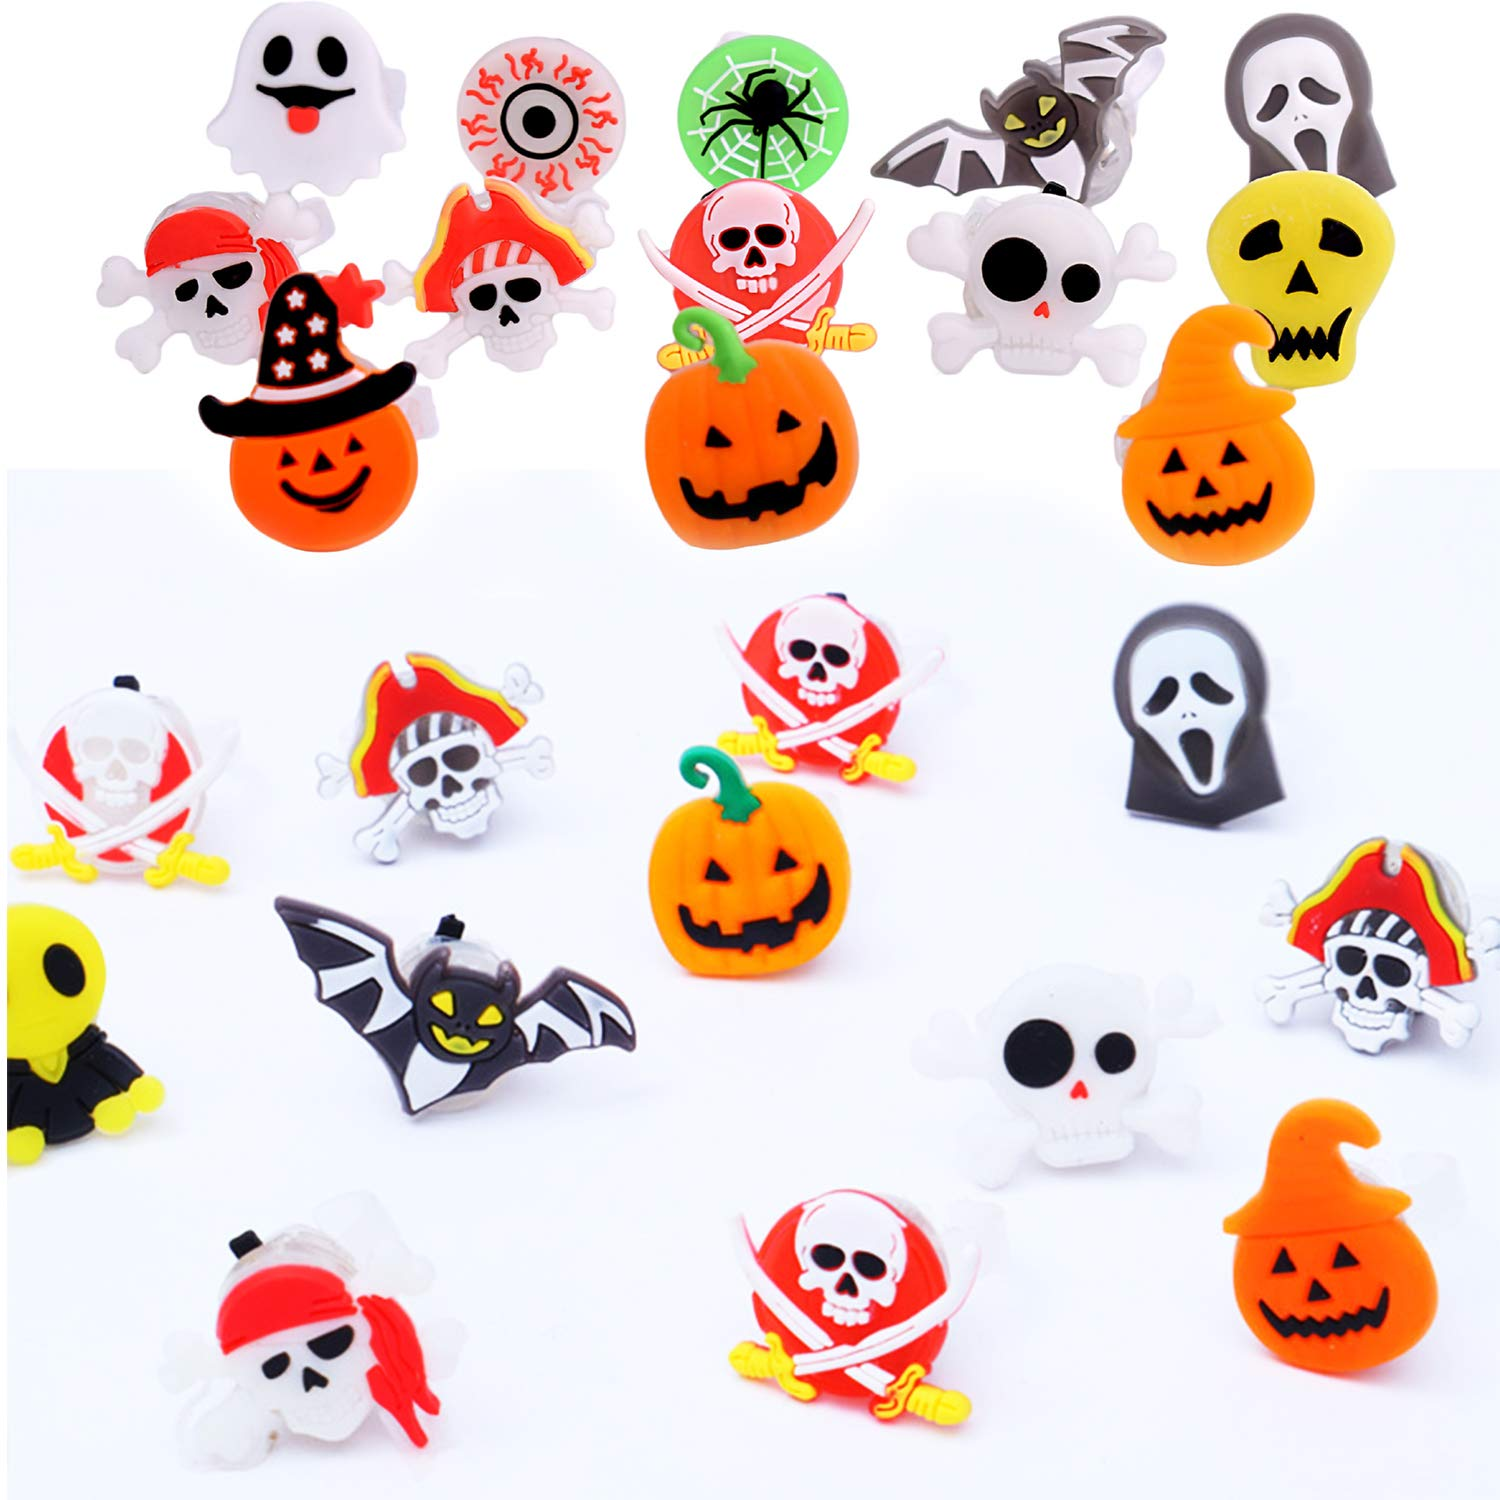 50 Pack Halloween Light Up Rings for Kids Adults Party Favors Flashing Glow LED Ring Bright Flash Toys Set Gift for Halloween Kid Party Supplies Indoor Decoration Holiday Pumpkin Ghost Spider Bat